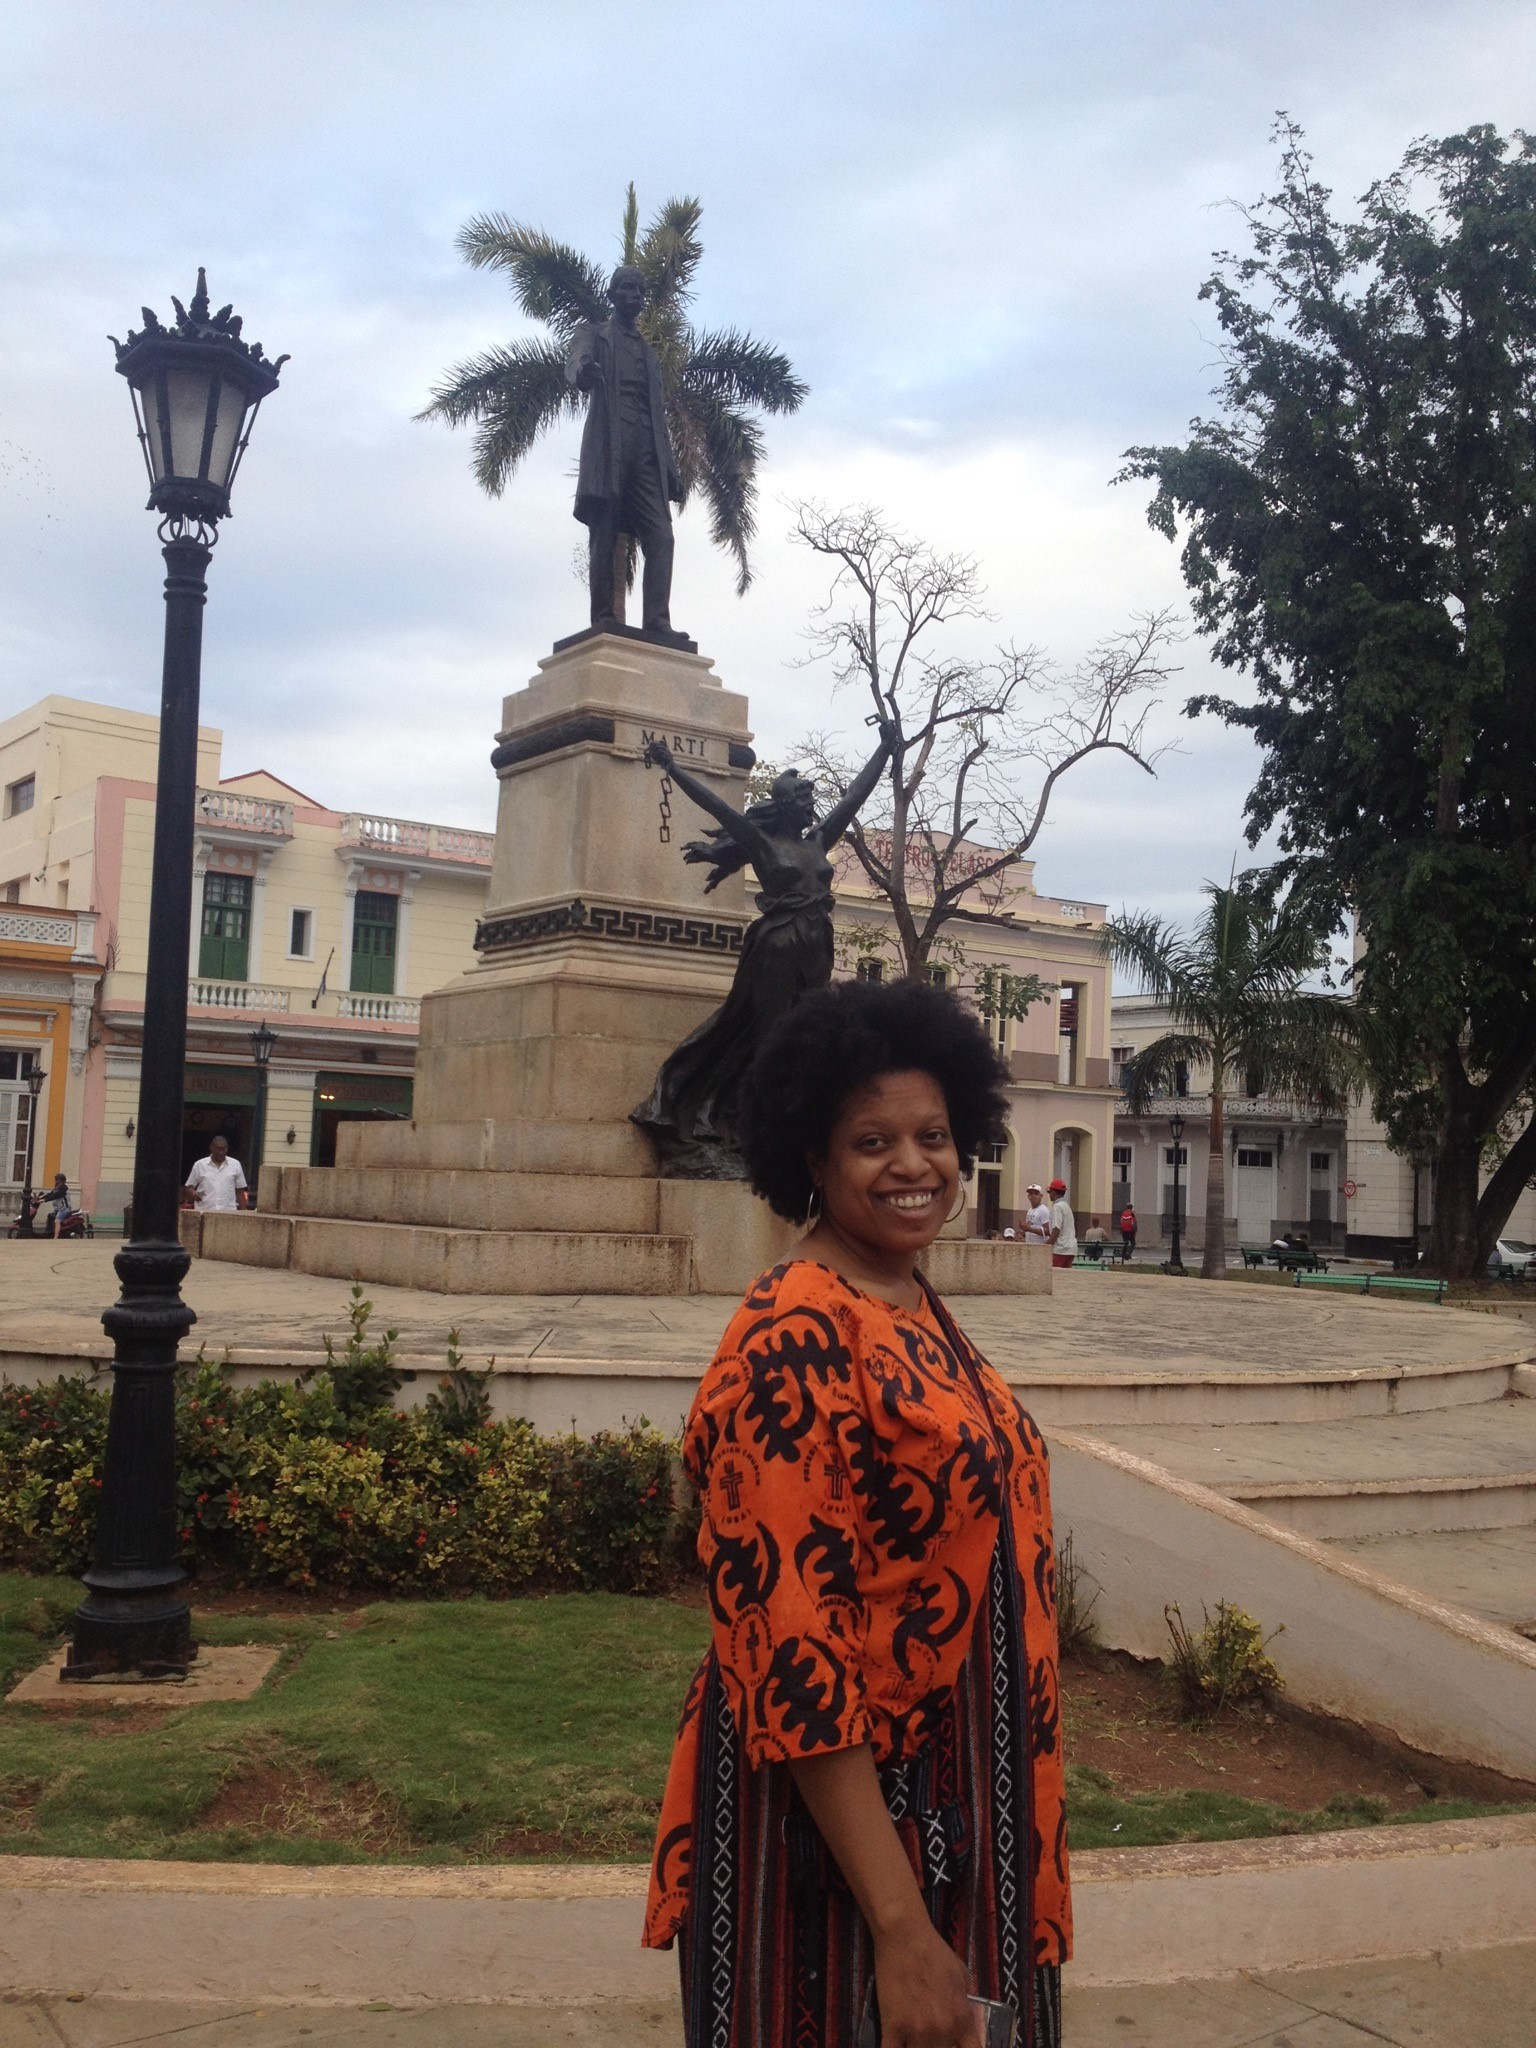 General Assembly Co-Moderator, the Rev. Denise Anderson, in Havana, with a statue of Cuban hero José Martí and Lady Liberty.